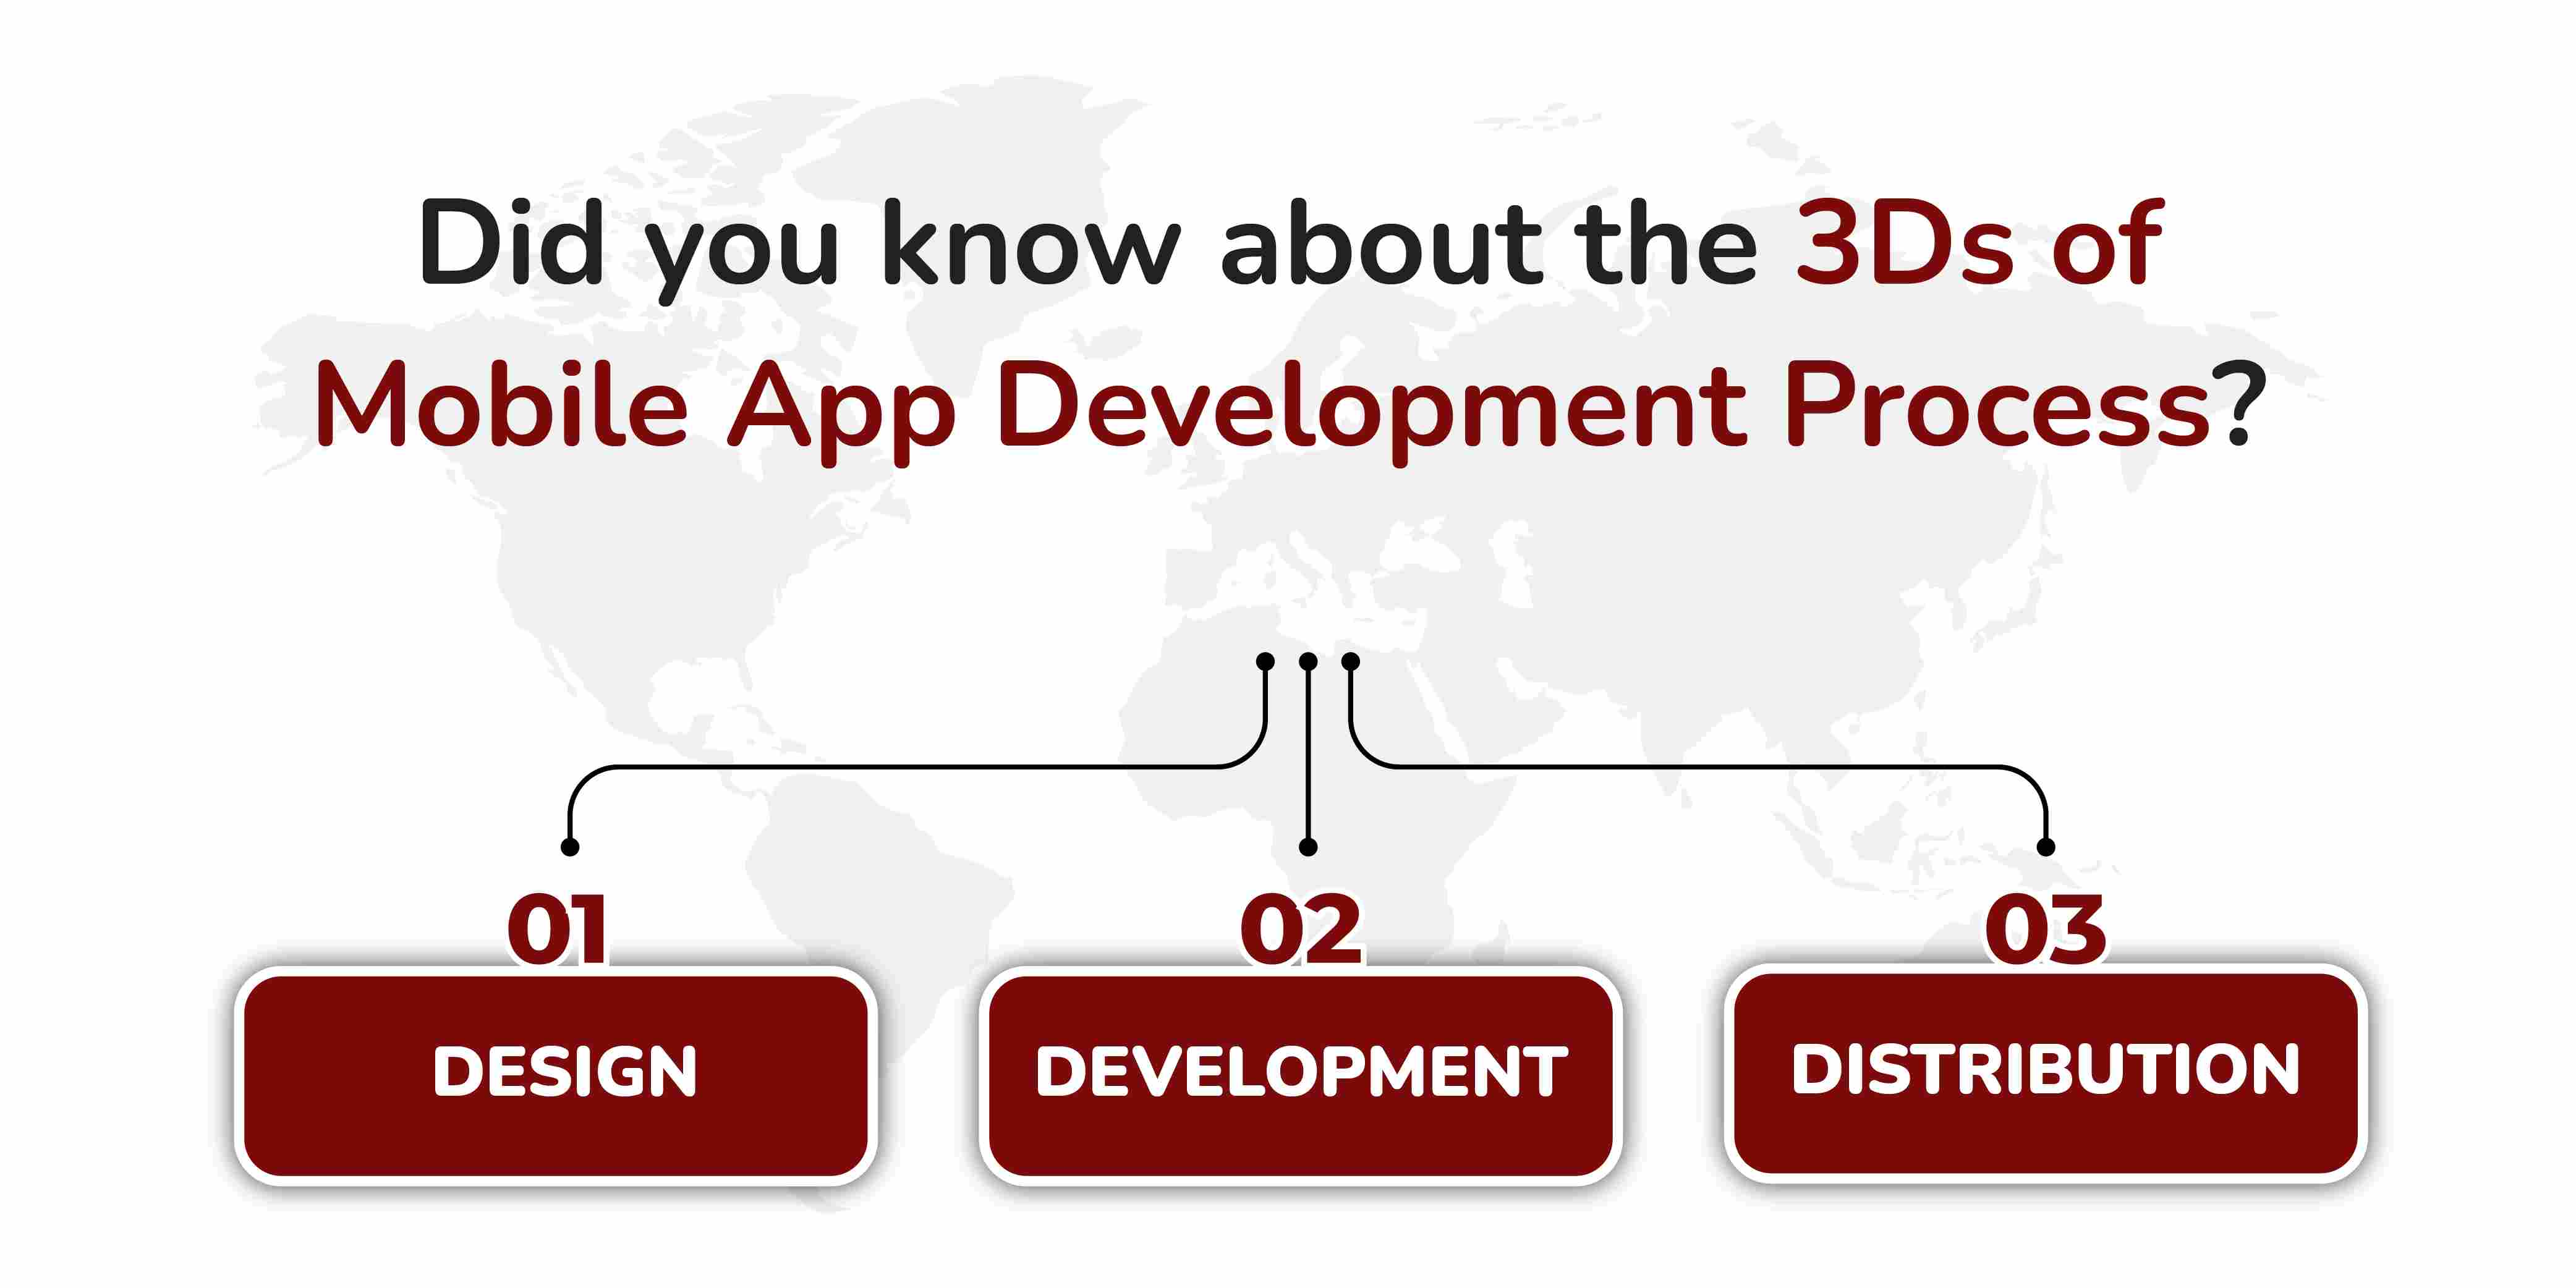 Did you know About the 3 Ds of Mobile App Development Process